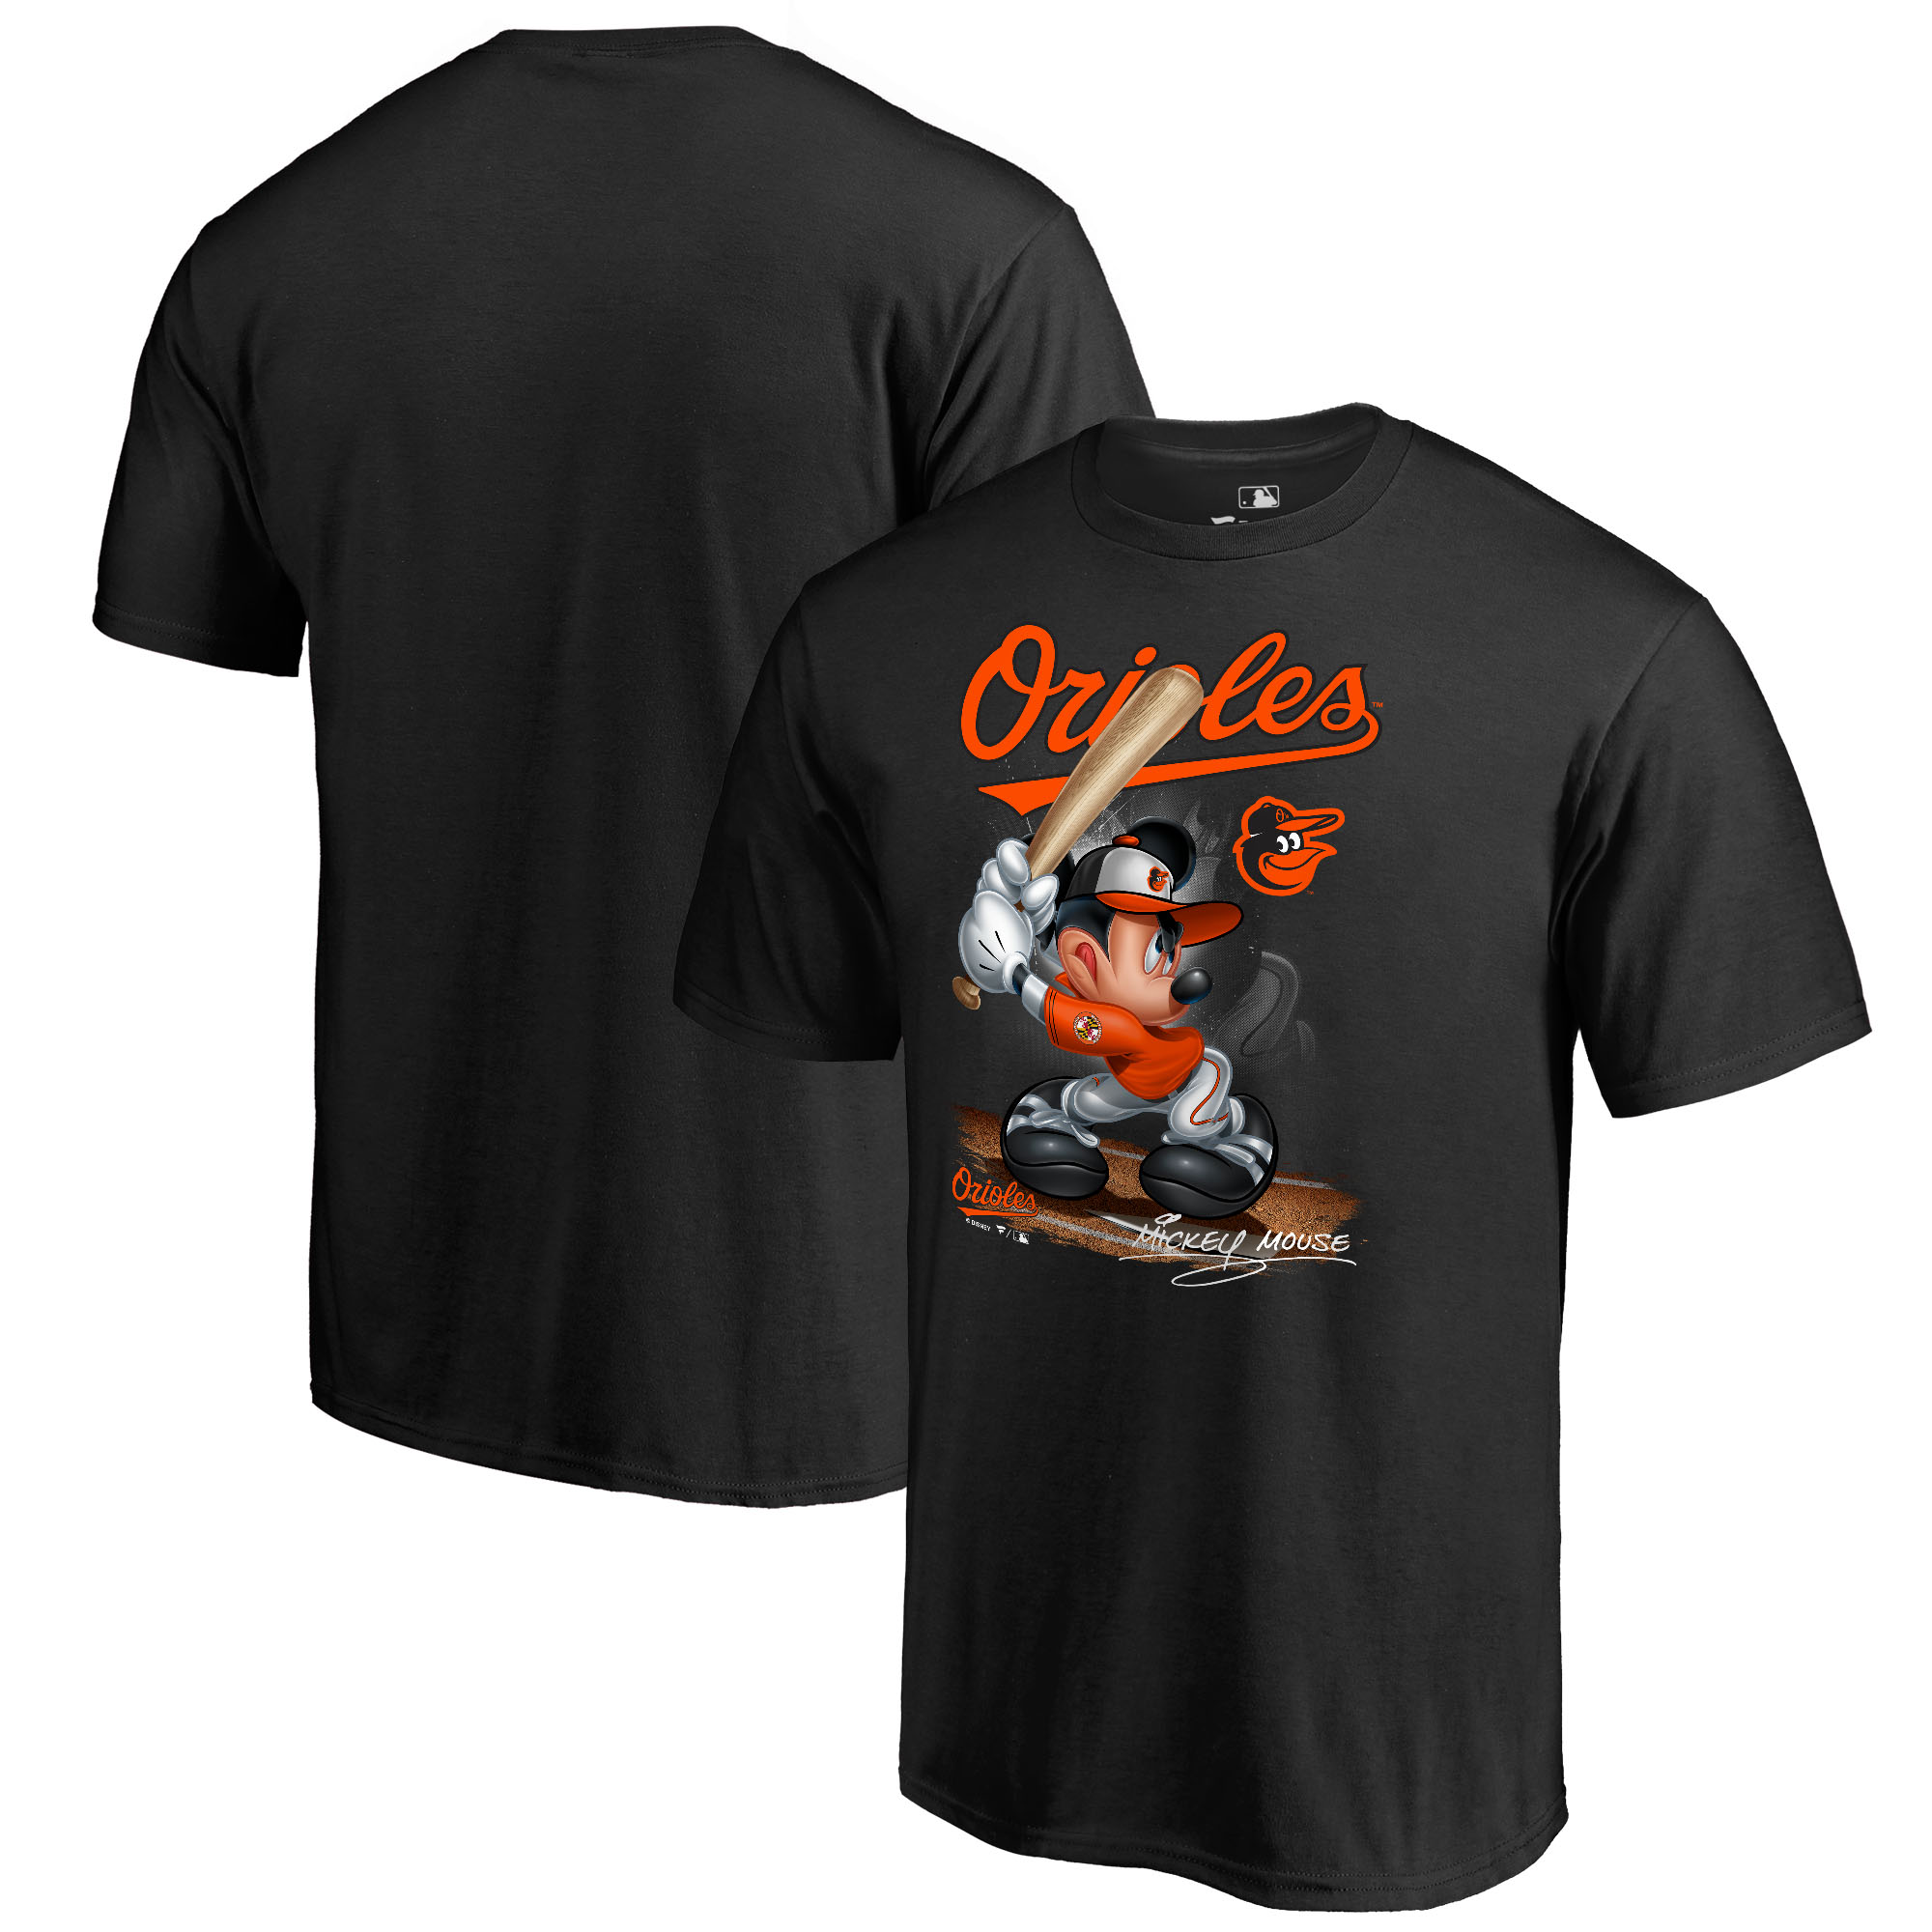 Baltimore Orioles Fanatics Branded Youth Disney All Star T-Shirt - Black